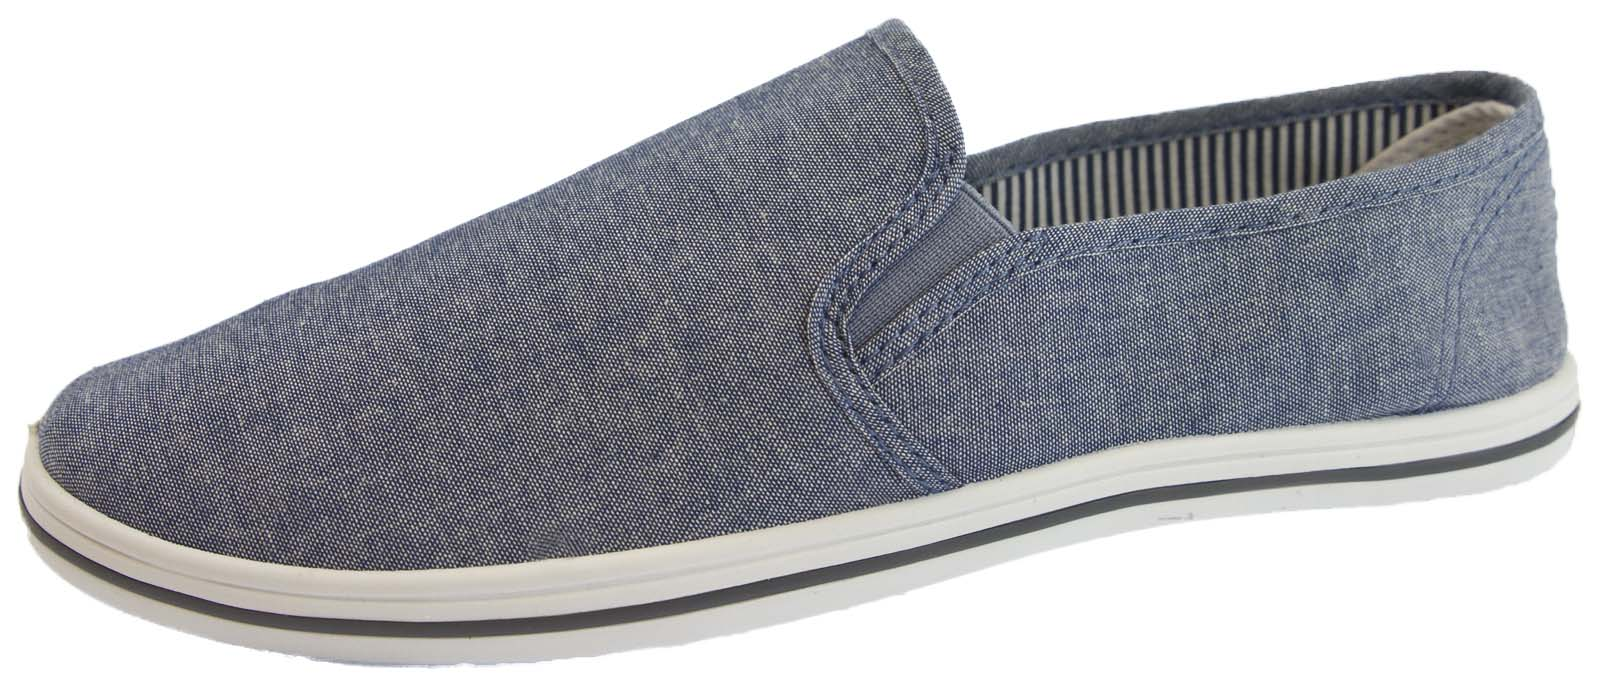 Find the latest and greatest canvas and plimsoll shoes from the specialist brands: Converse, Fred Perry, TOMS and Flossy, right here at JD. Keeping a low profile for smooth and step in style, there are many options to consider, from the classic All Stars to the Alpragata.